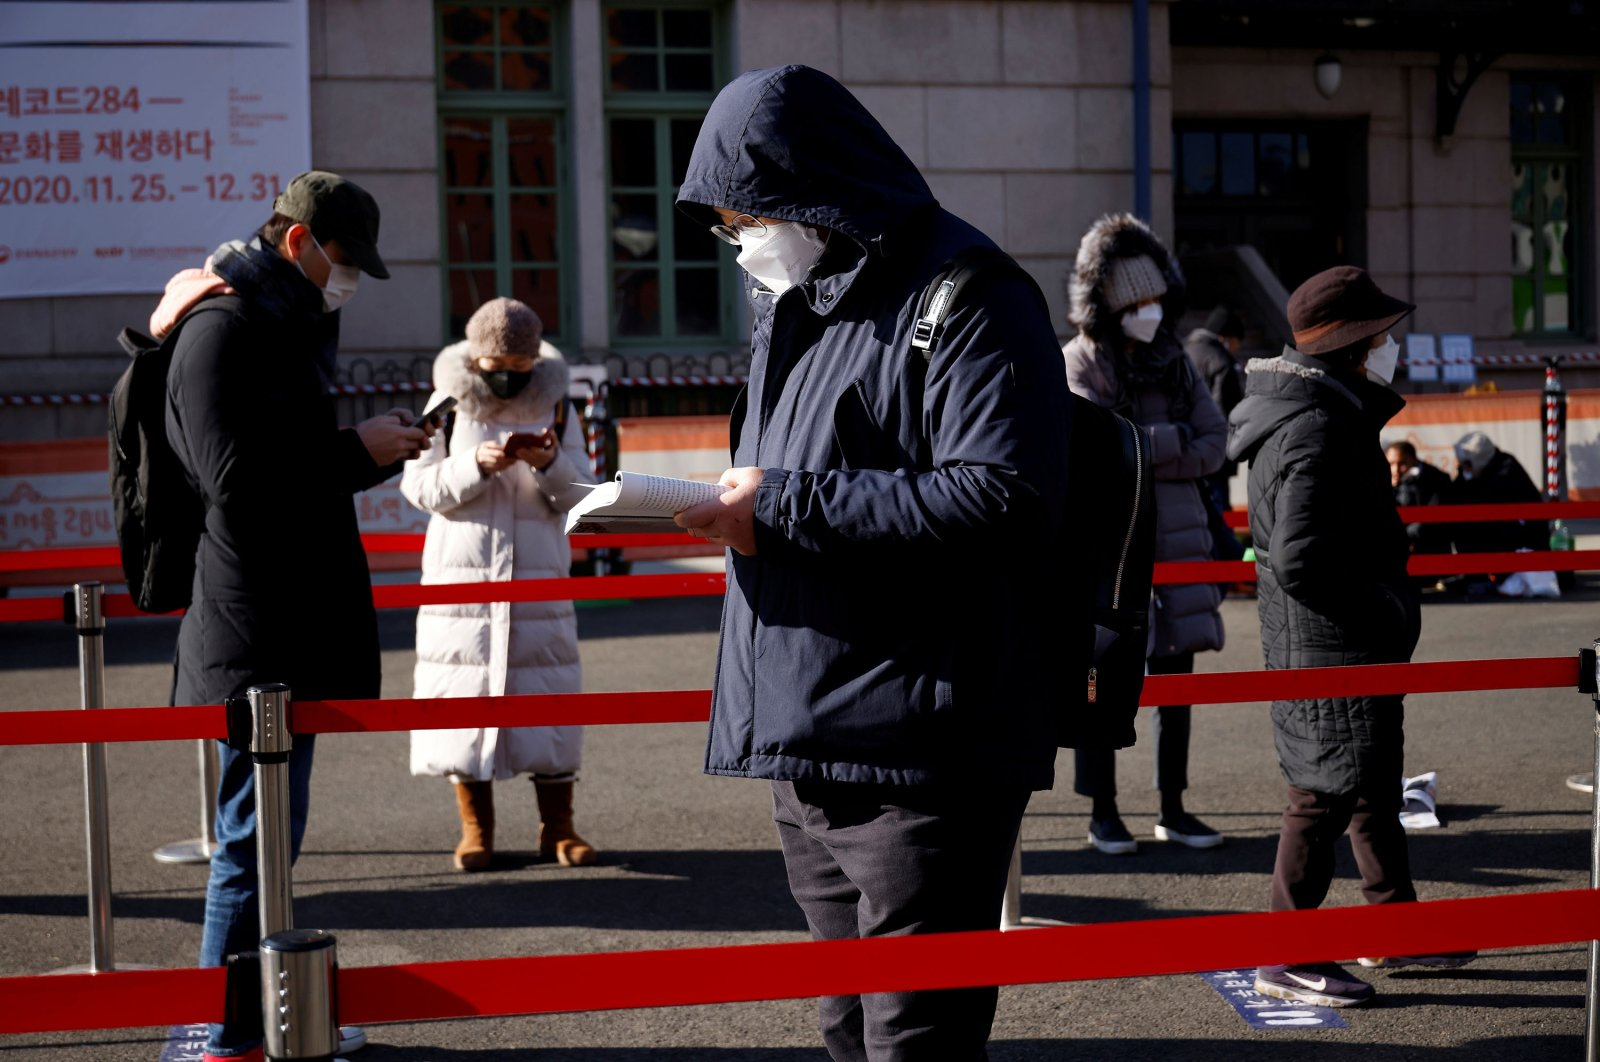 A man reads a book while waiting in a line to undergo a coronavirus test at a testing site which is temporarily set up in front of a railway station on Christmas Day in Seoul, South Korea, Dec. 25, 2020. (Reuters Photo)